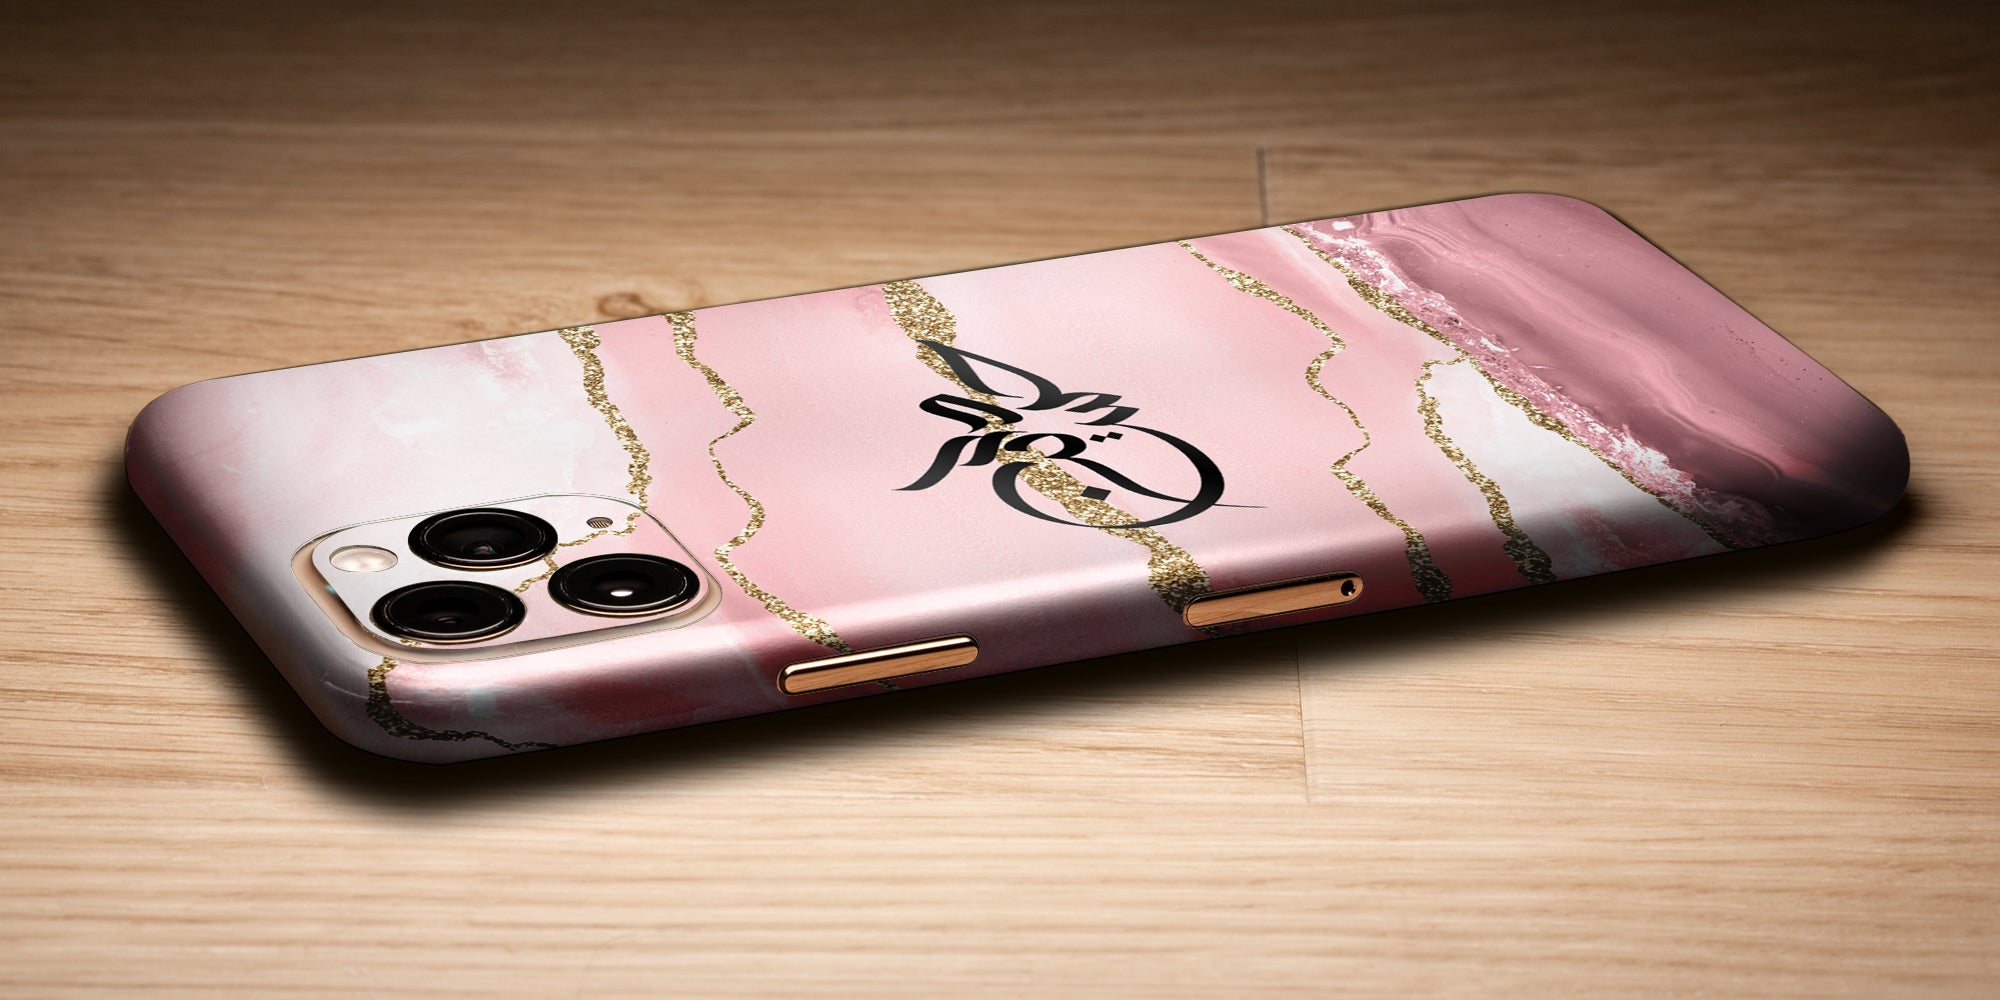 Agate Design Decal Skin With Personalised Arabic Name Phone Wrap - Blush Pink